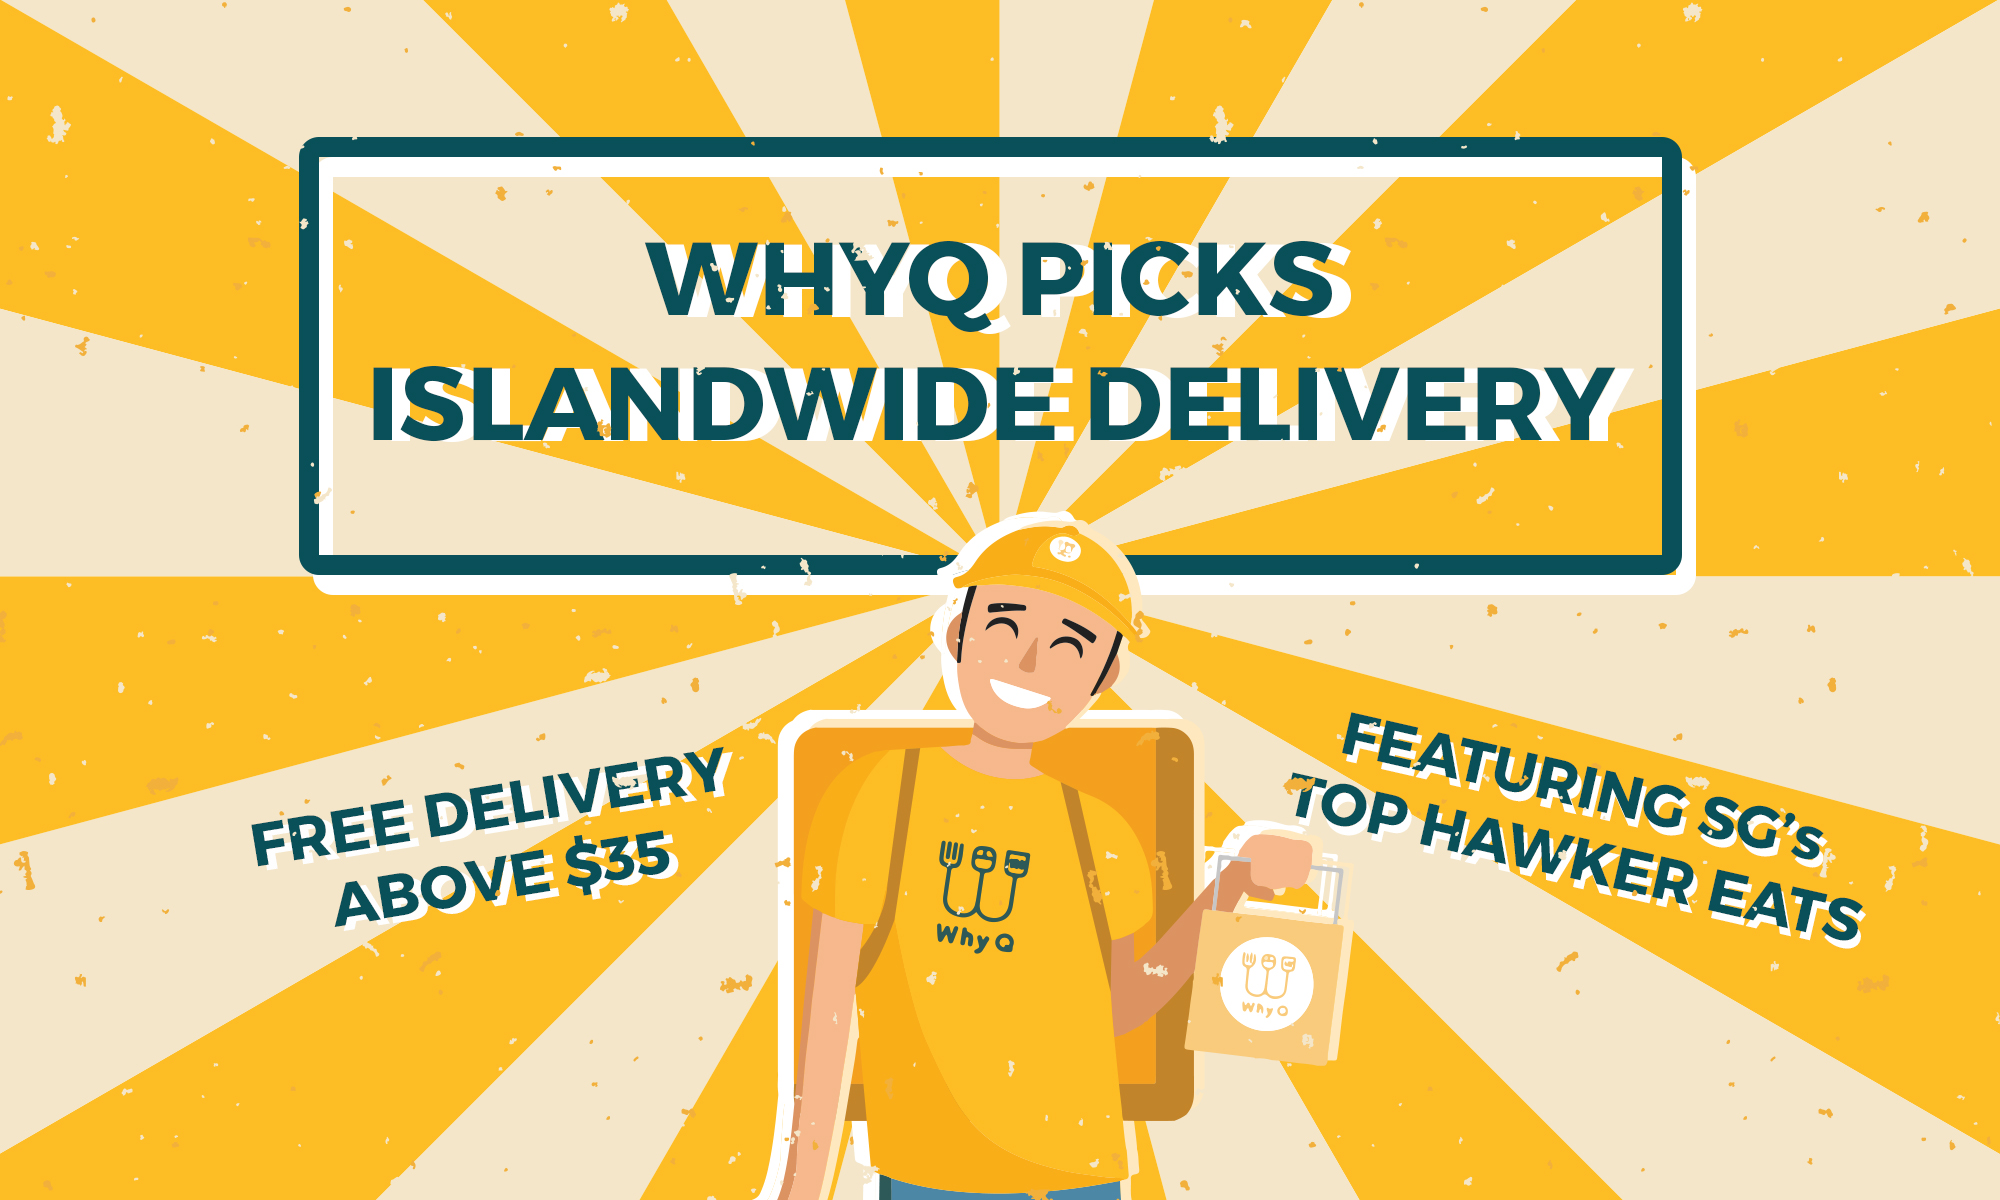 WhyQ Picks Islandwide Delivery